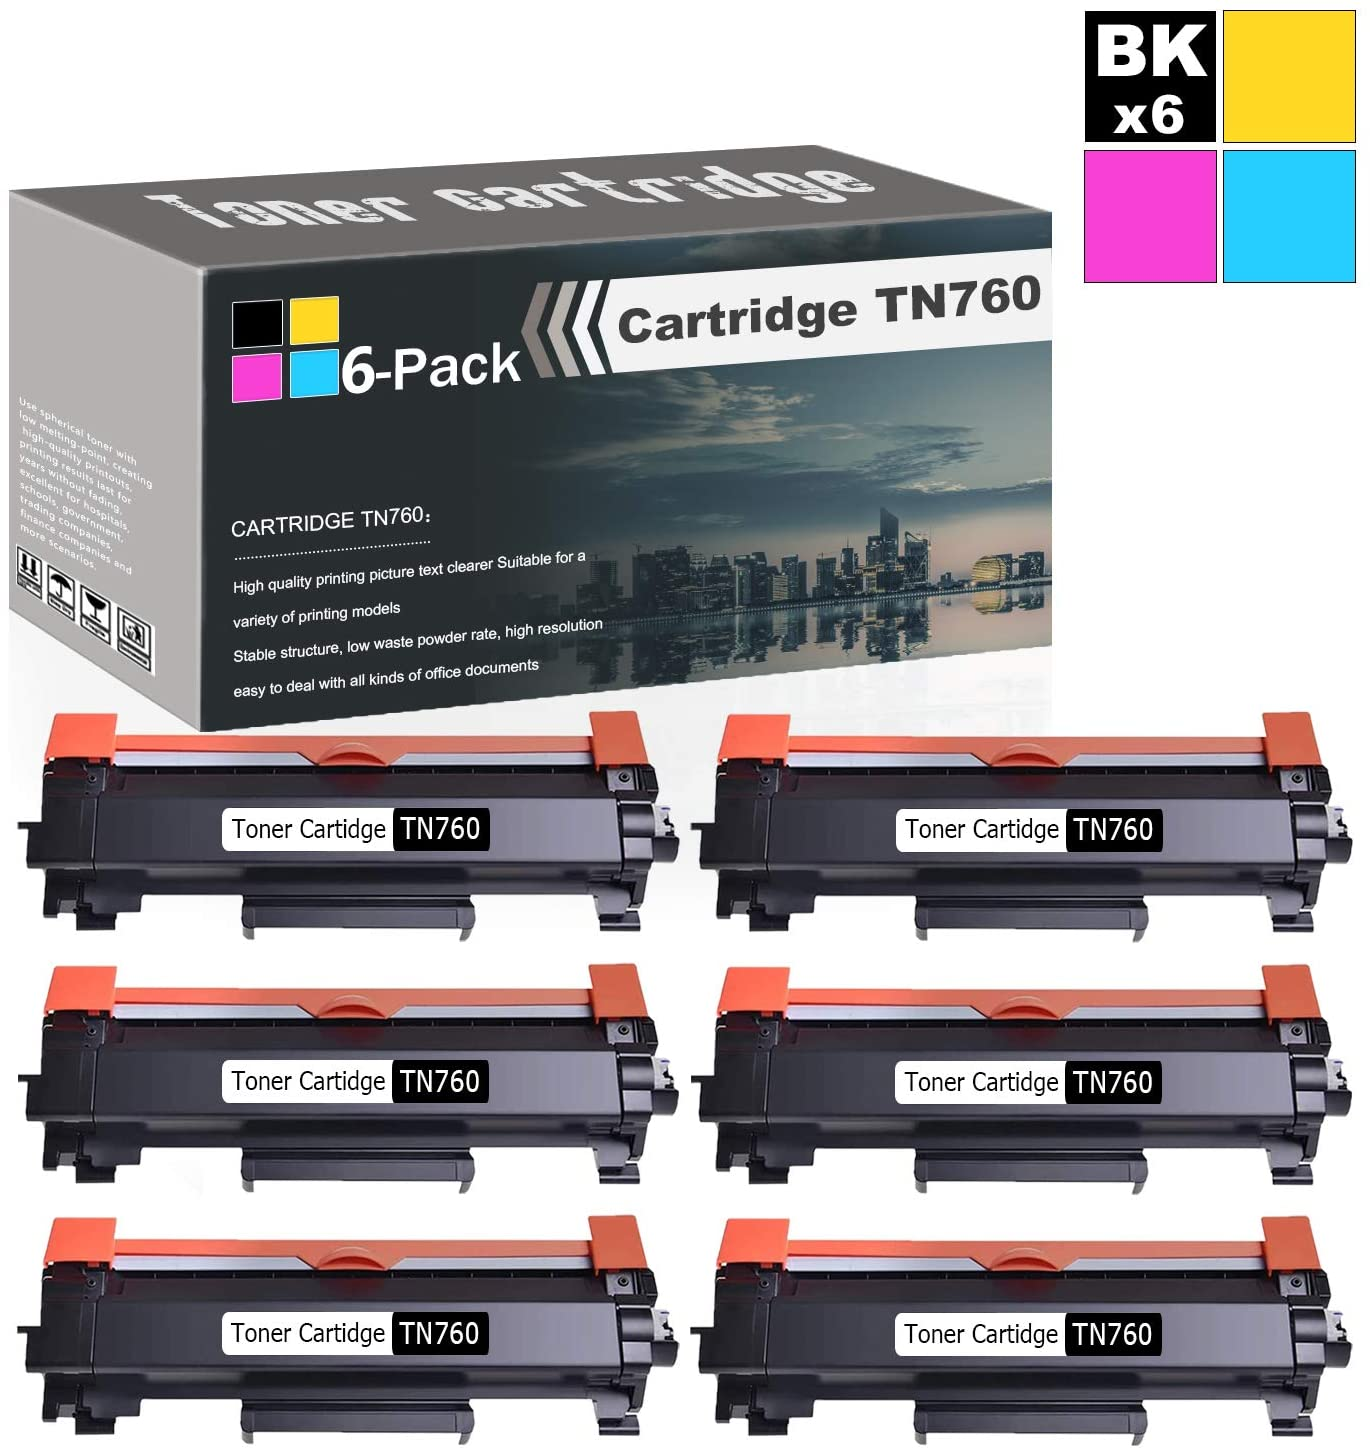 Compatible High Yield (Black,6-Pack) Laser Toner Replacement Cartridges for TN760 to use with Brother DCP-L2550DW MFC-L2710DW MFC-L2750DW MFC-L2750DWXL HL-L2350DW HL-L2370DW/DWXL Printers Toner.